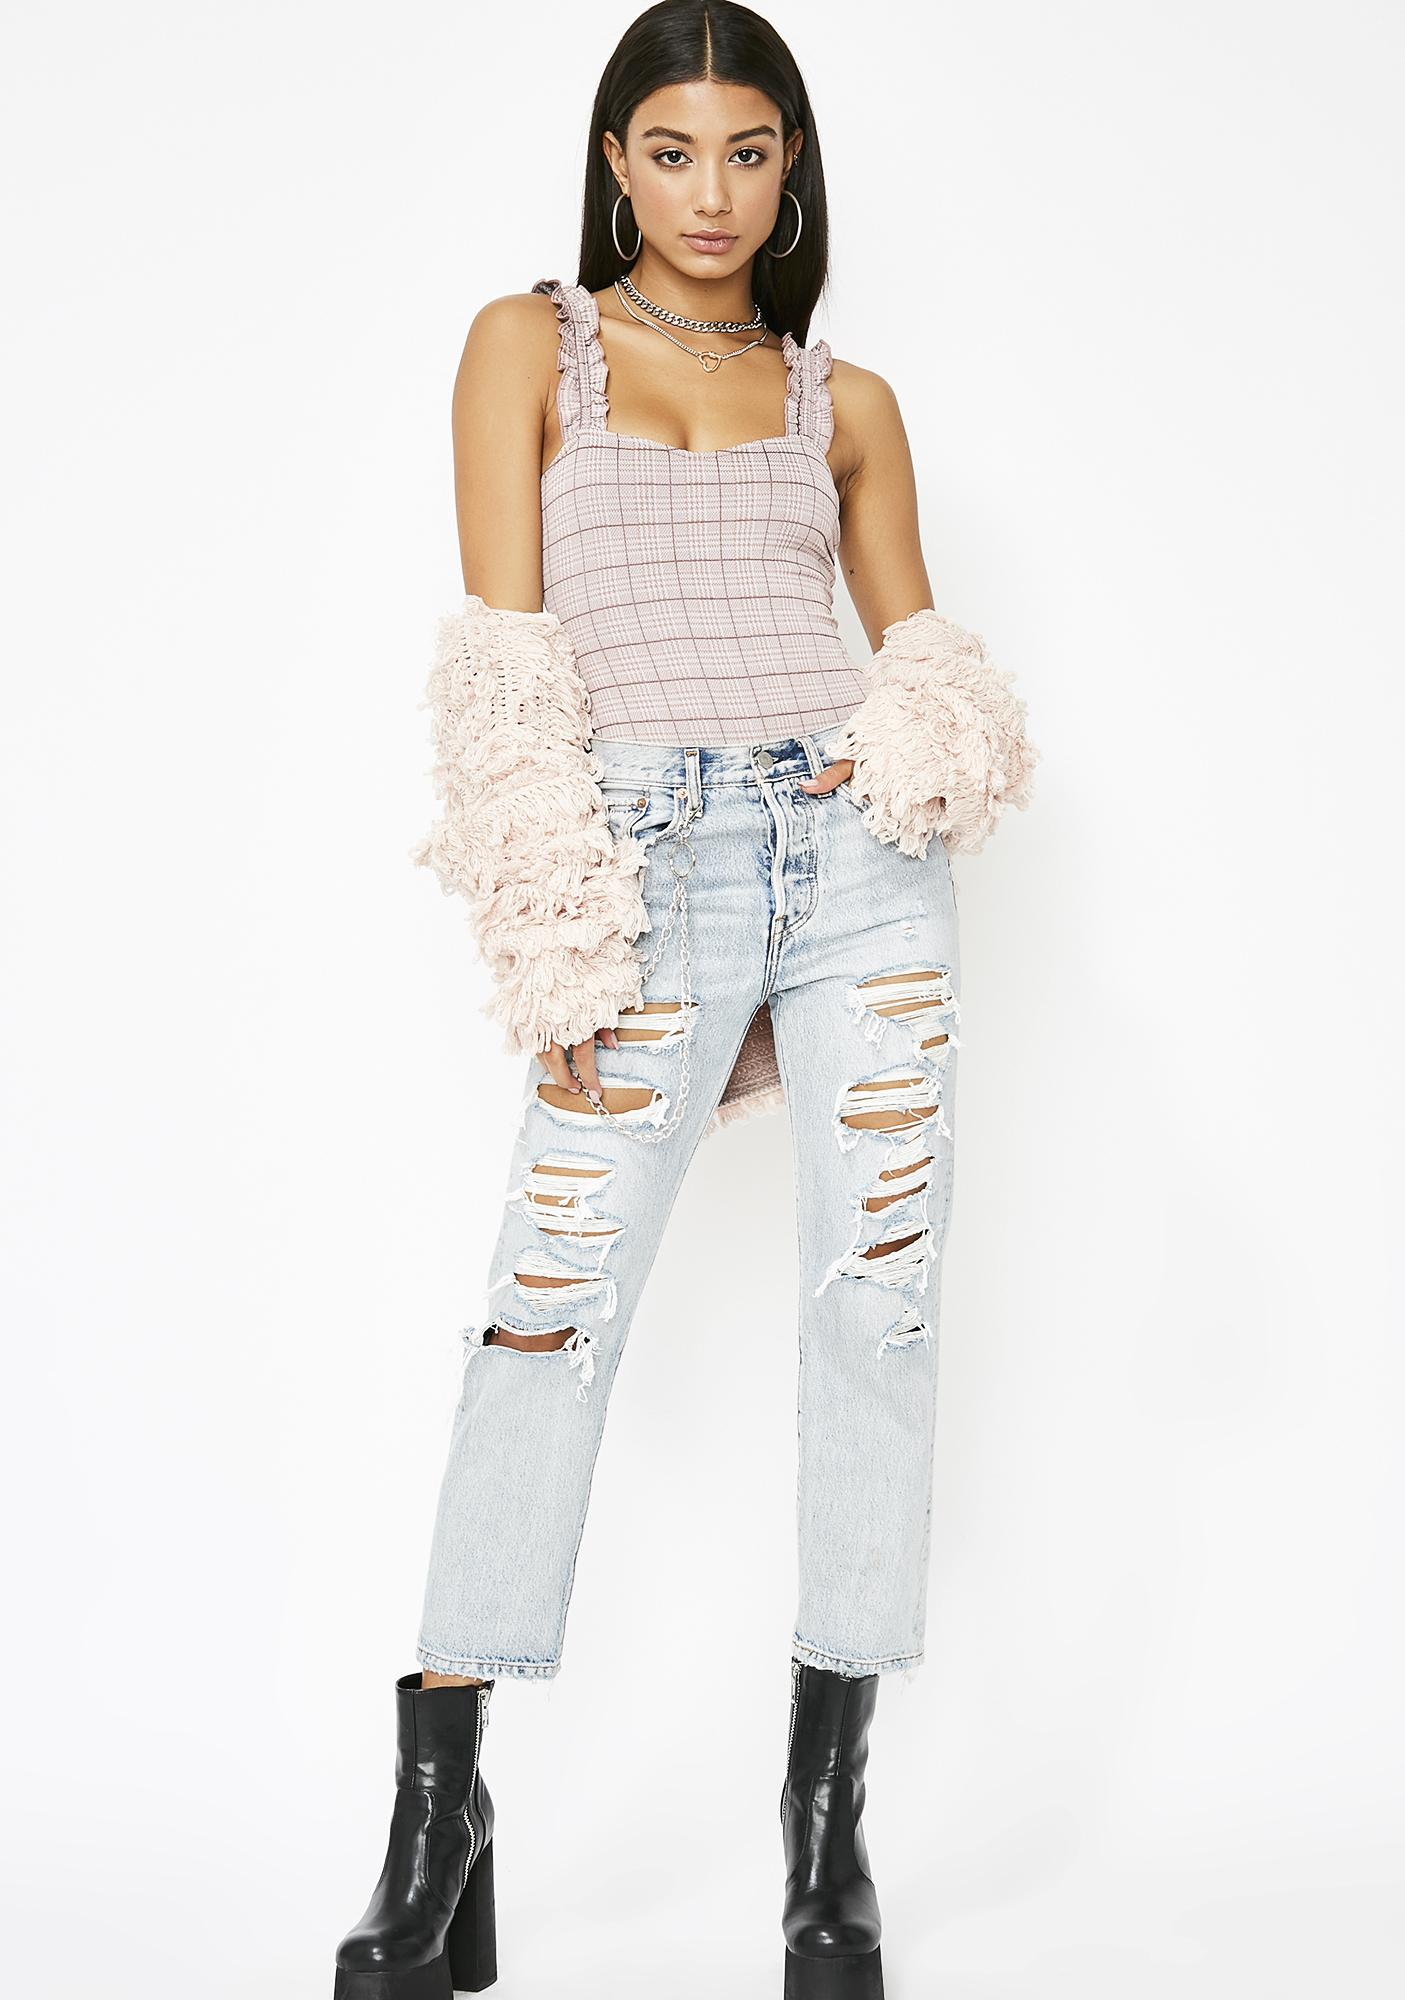 Sweet Delightful Smiles Ruffled Bodysuit